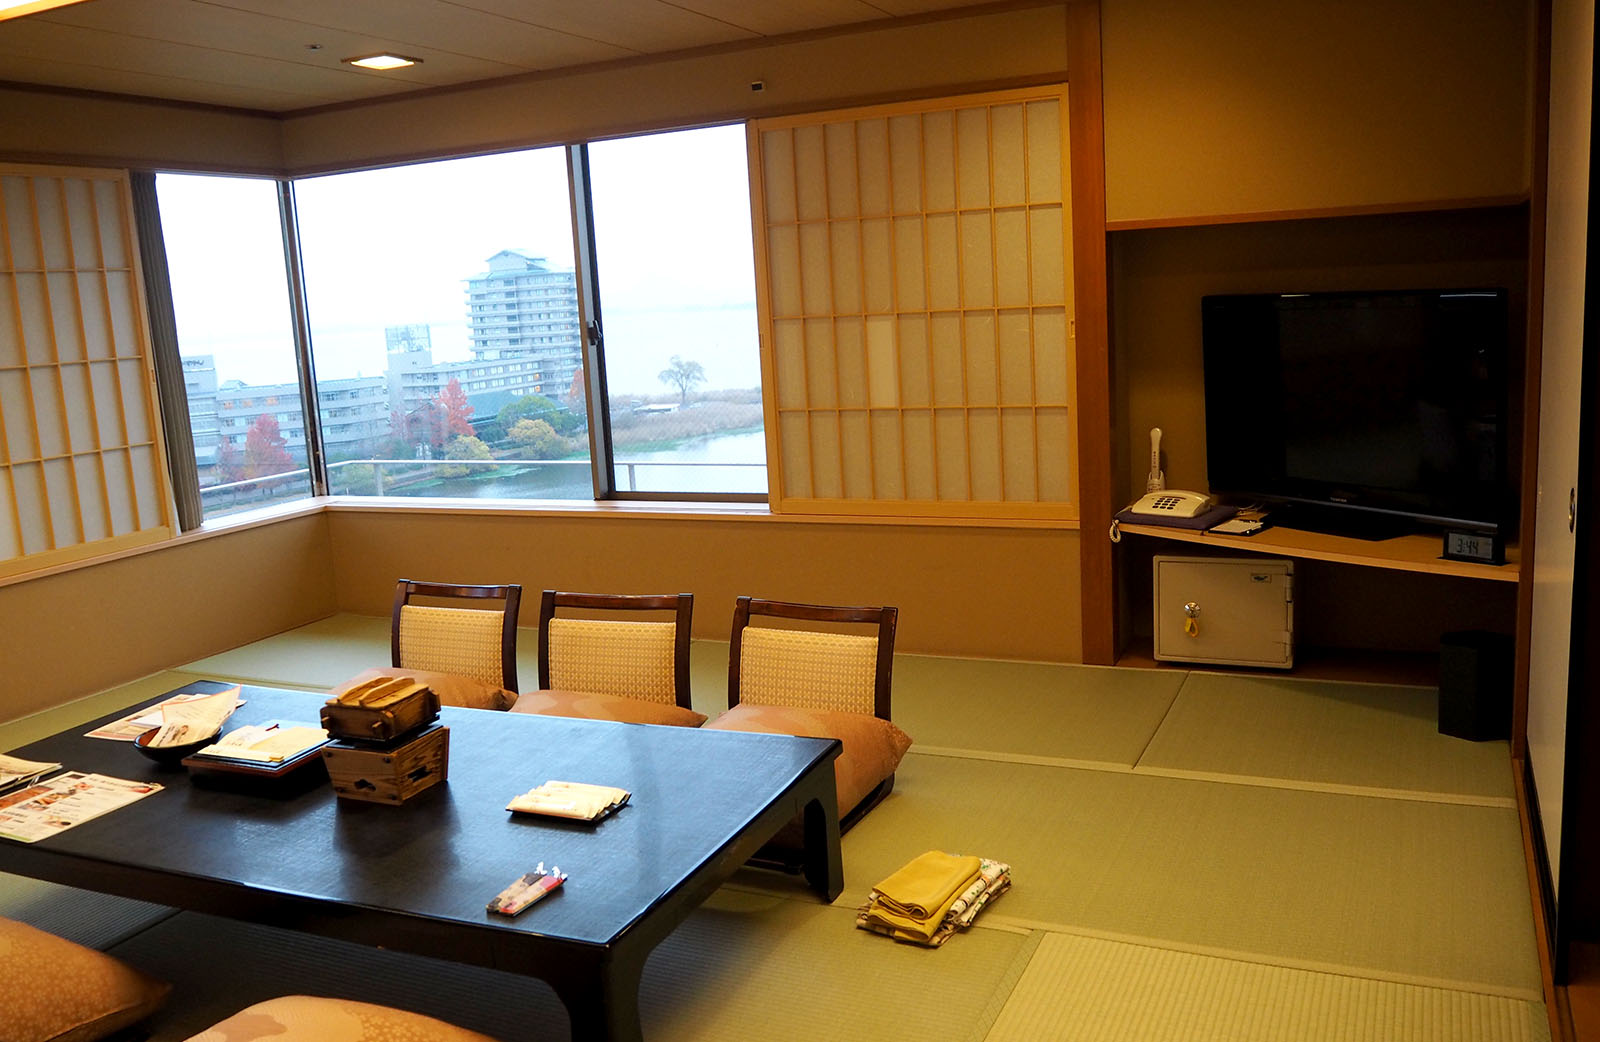 Staying at an Onsen Ryokan • The Petite Wanderess